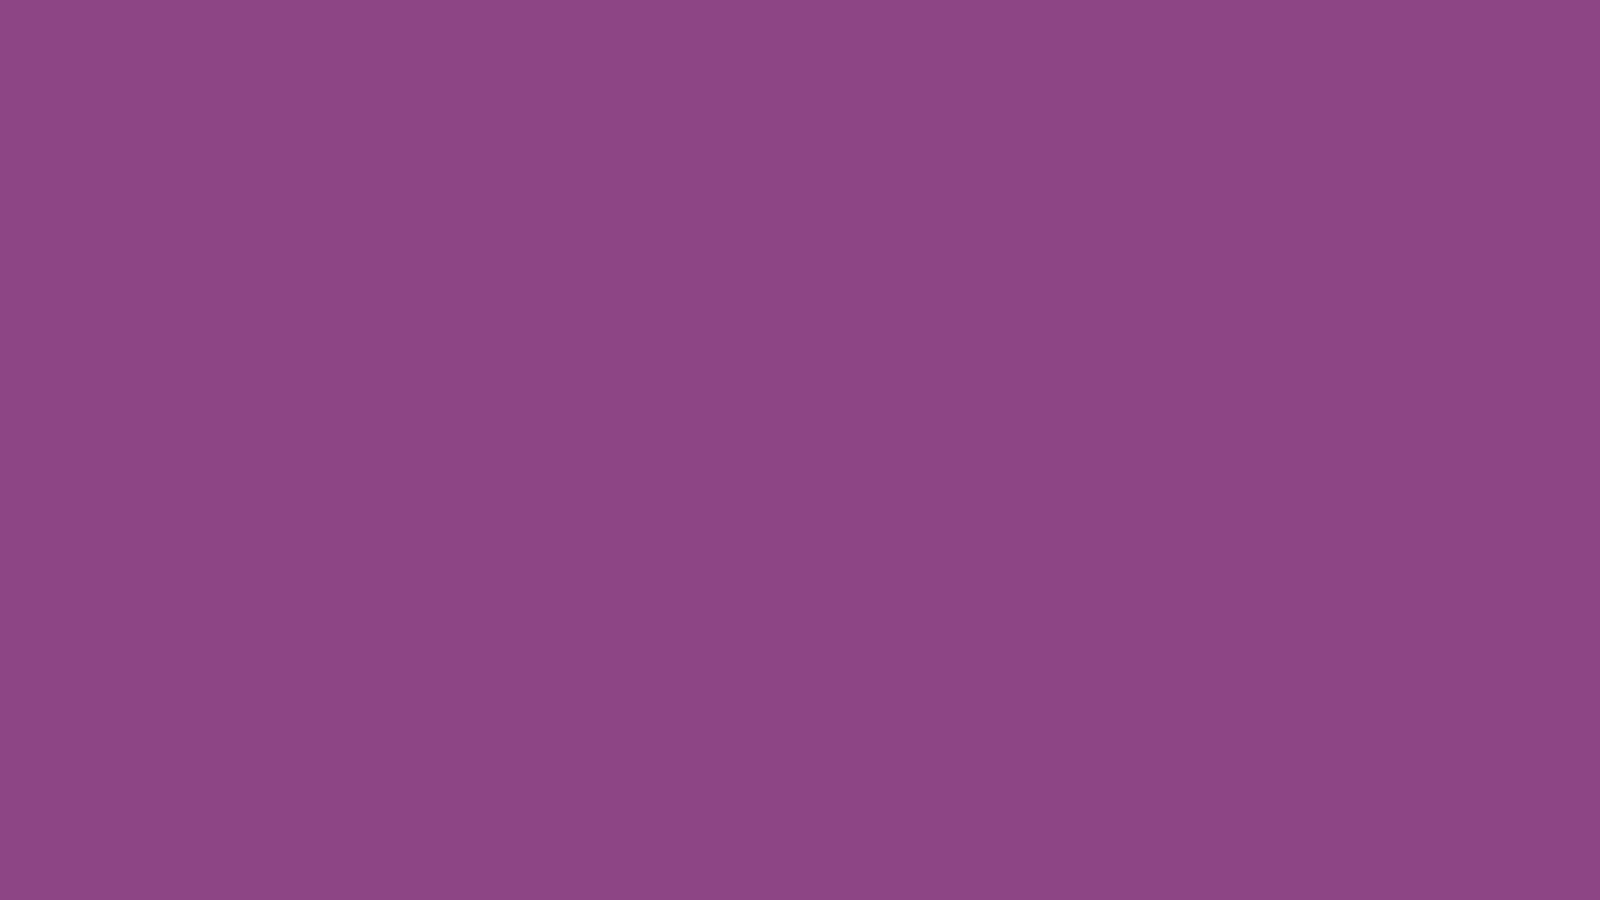 1600x900 Plum Traditional Solid Color Background